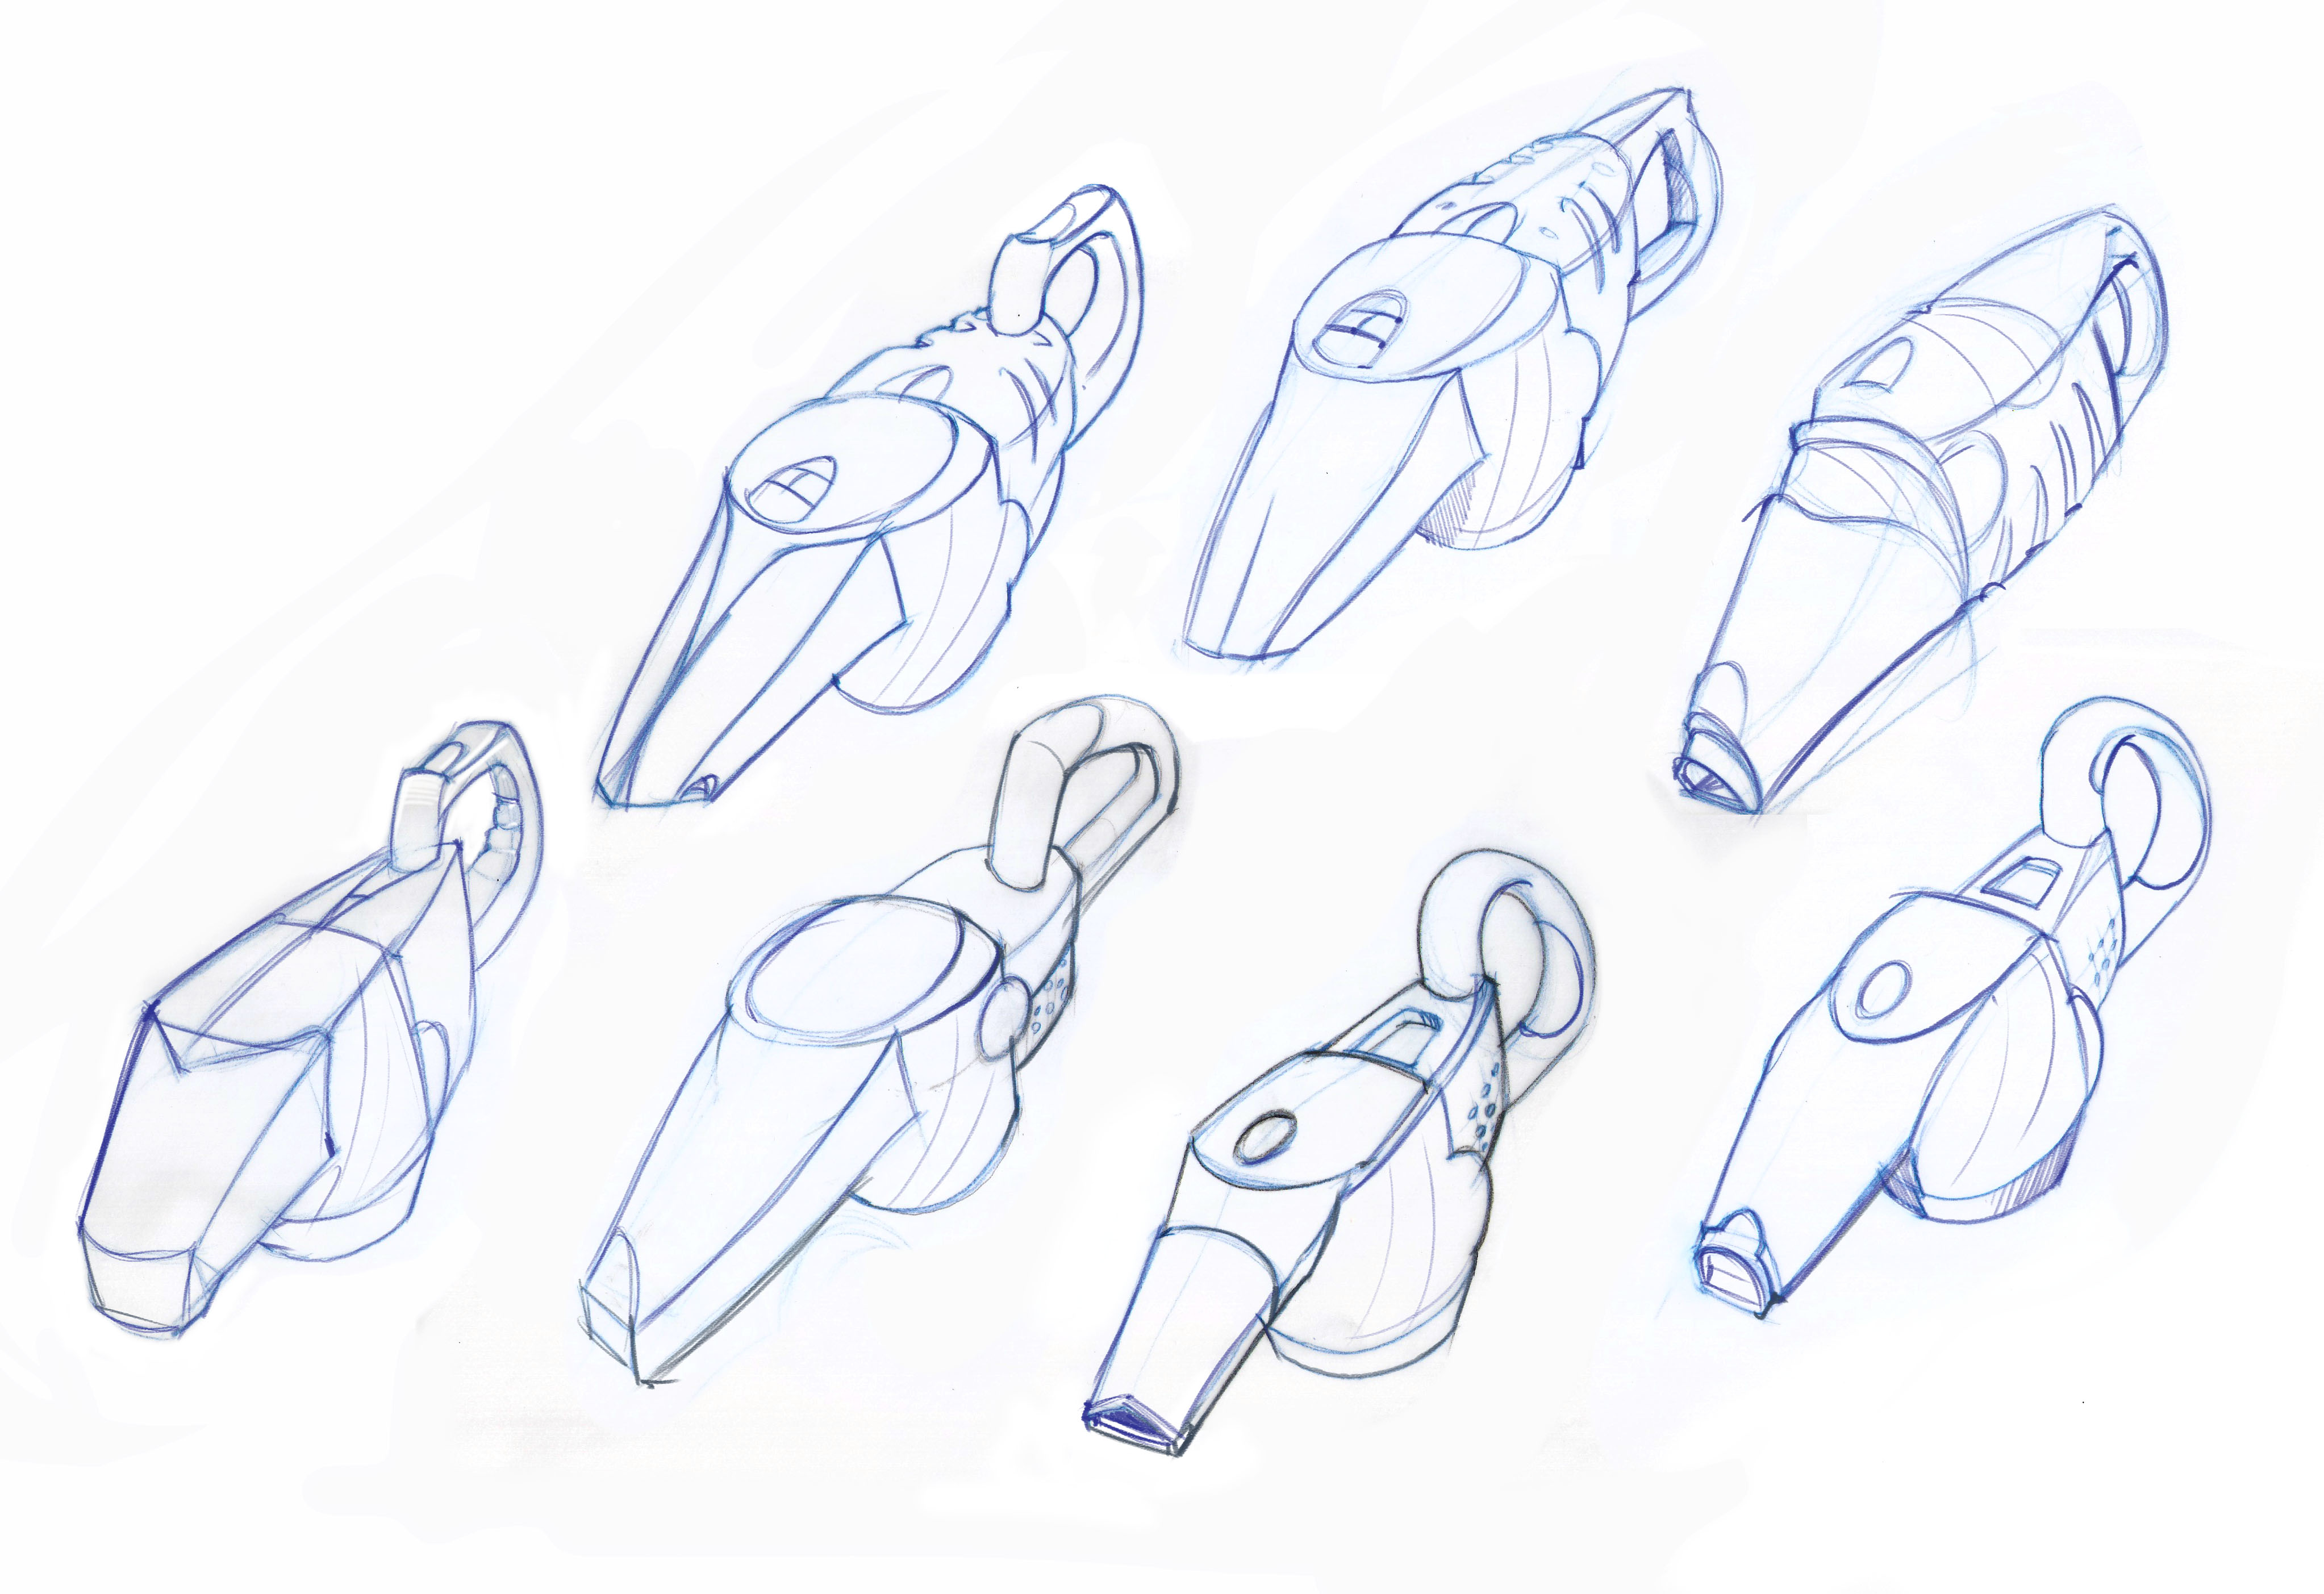 5 Exercises To Help You Learn Draw Perspective